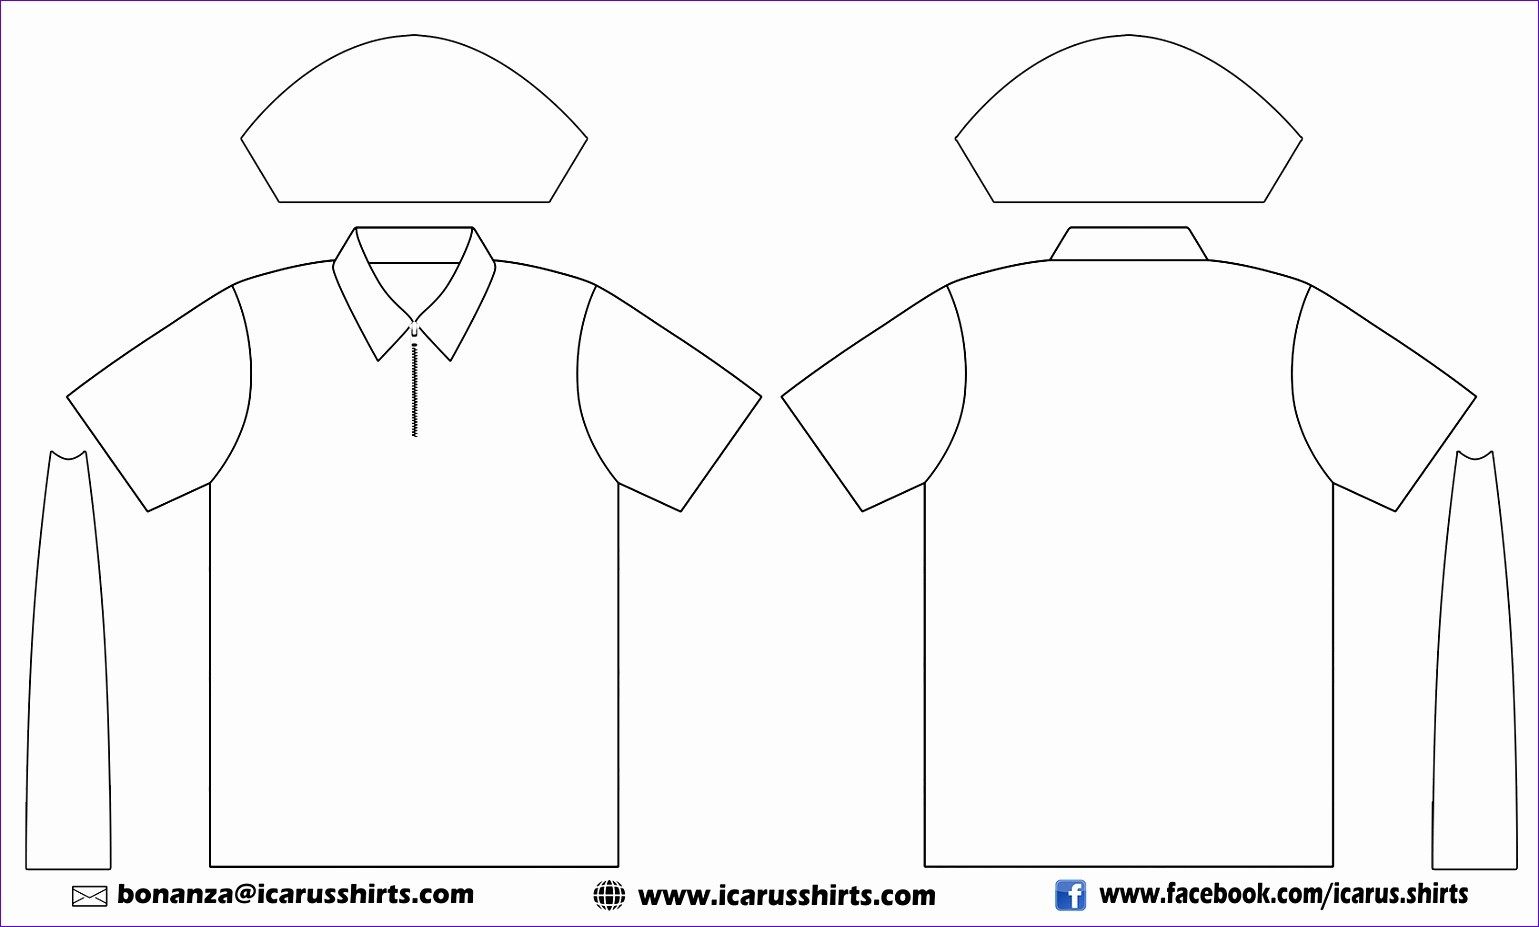 dry fit shirts 1539927